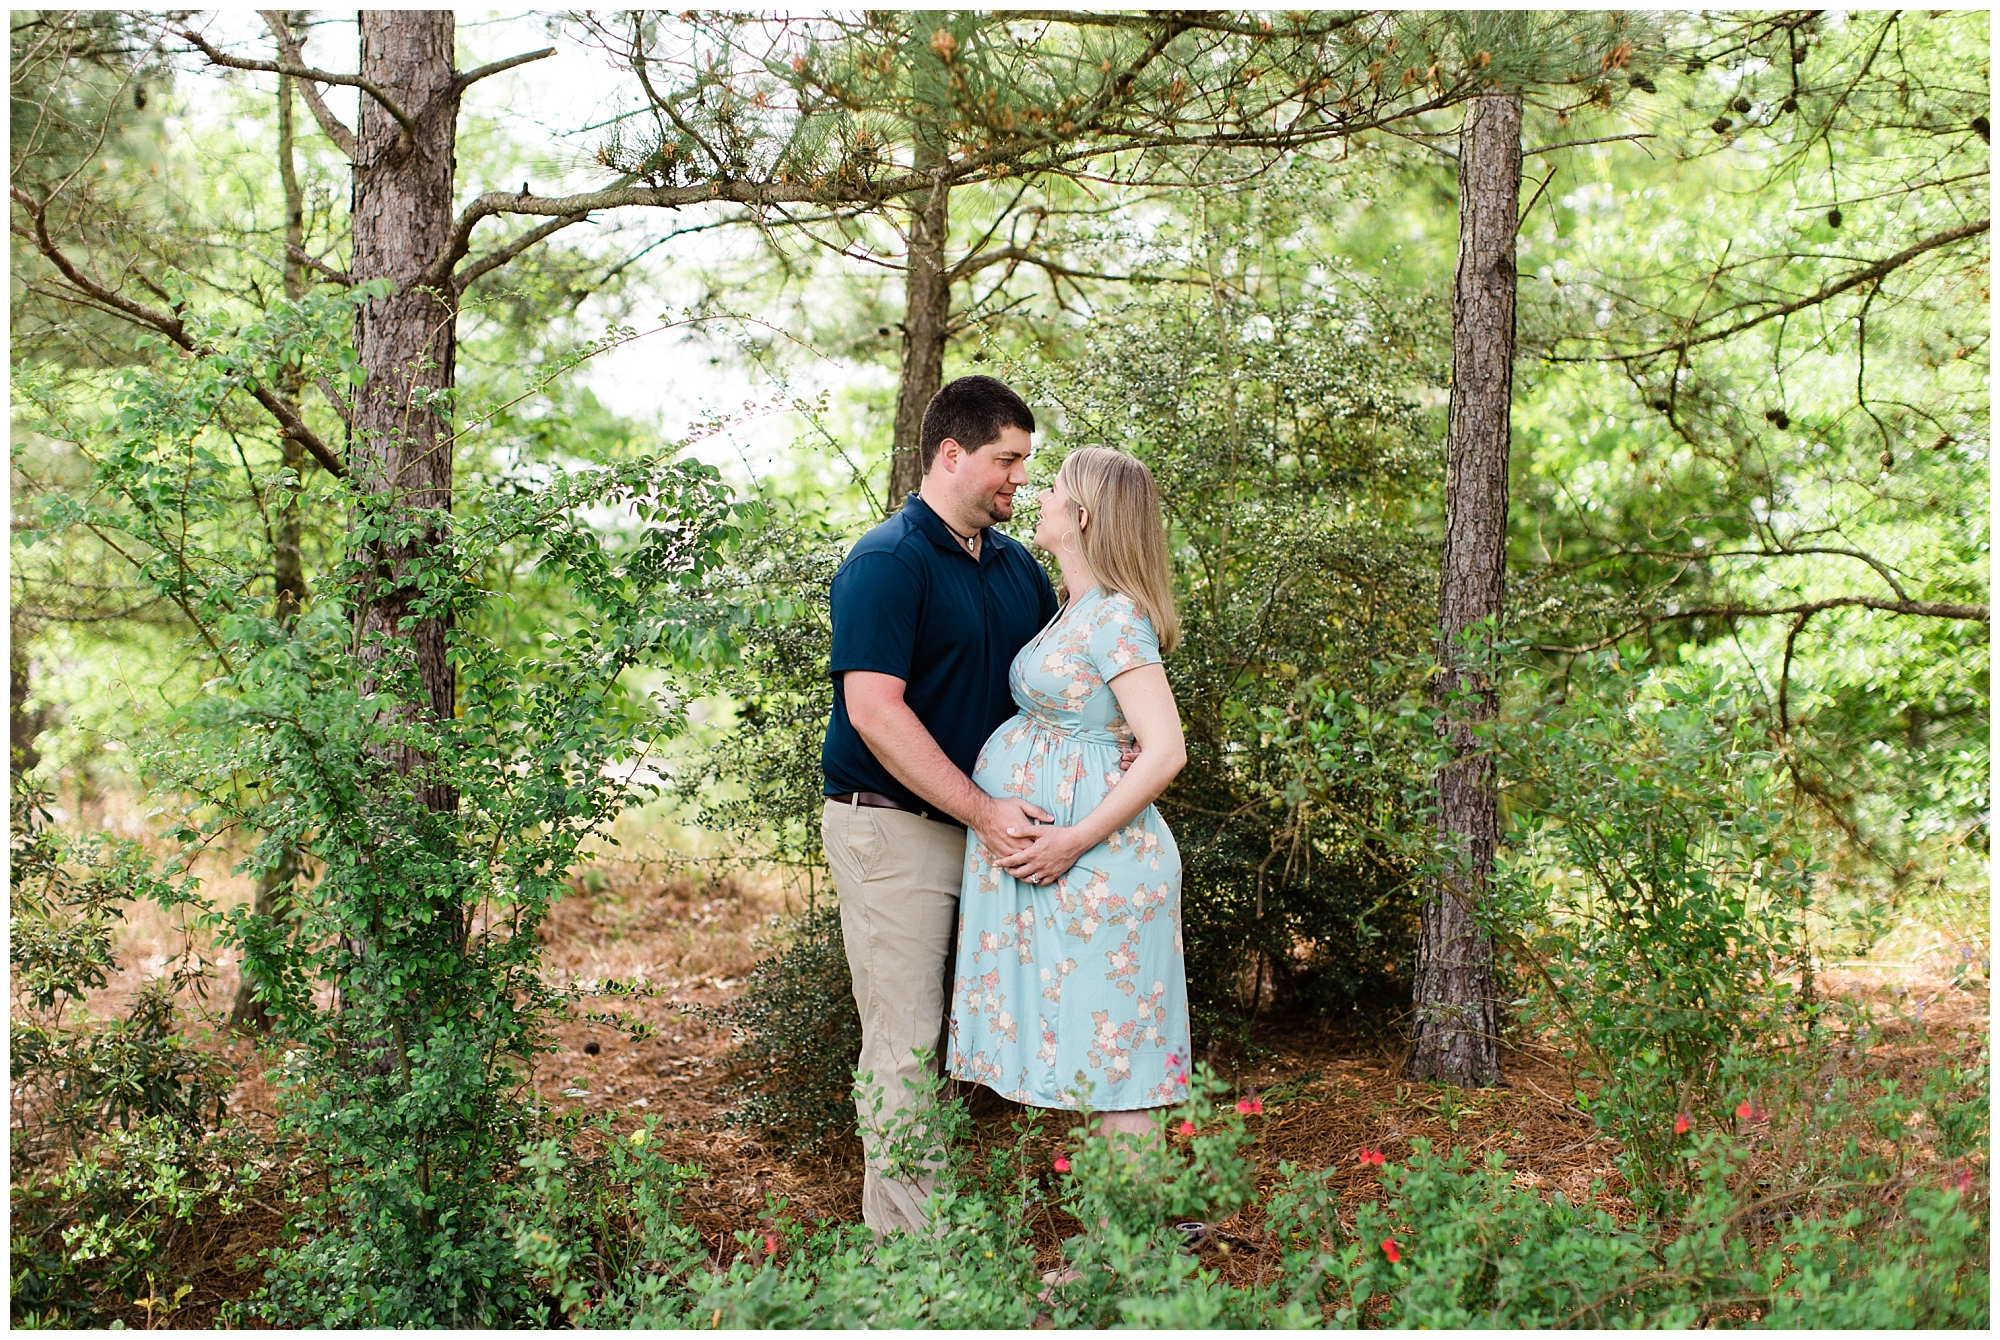 The_Woodlands_Maternity_Session_0005.jpg